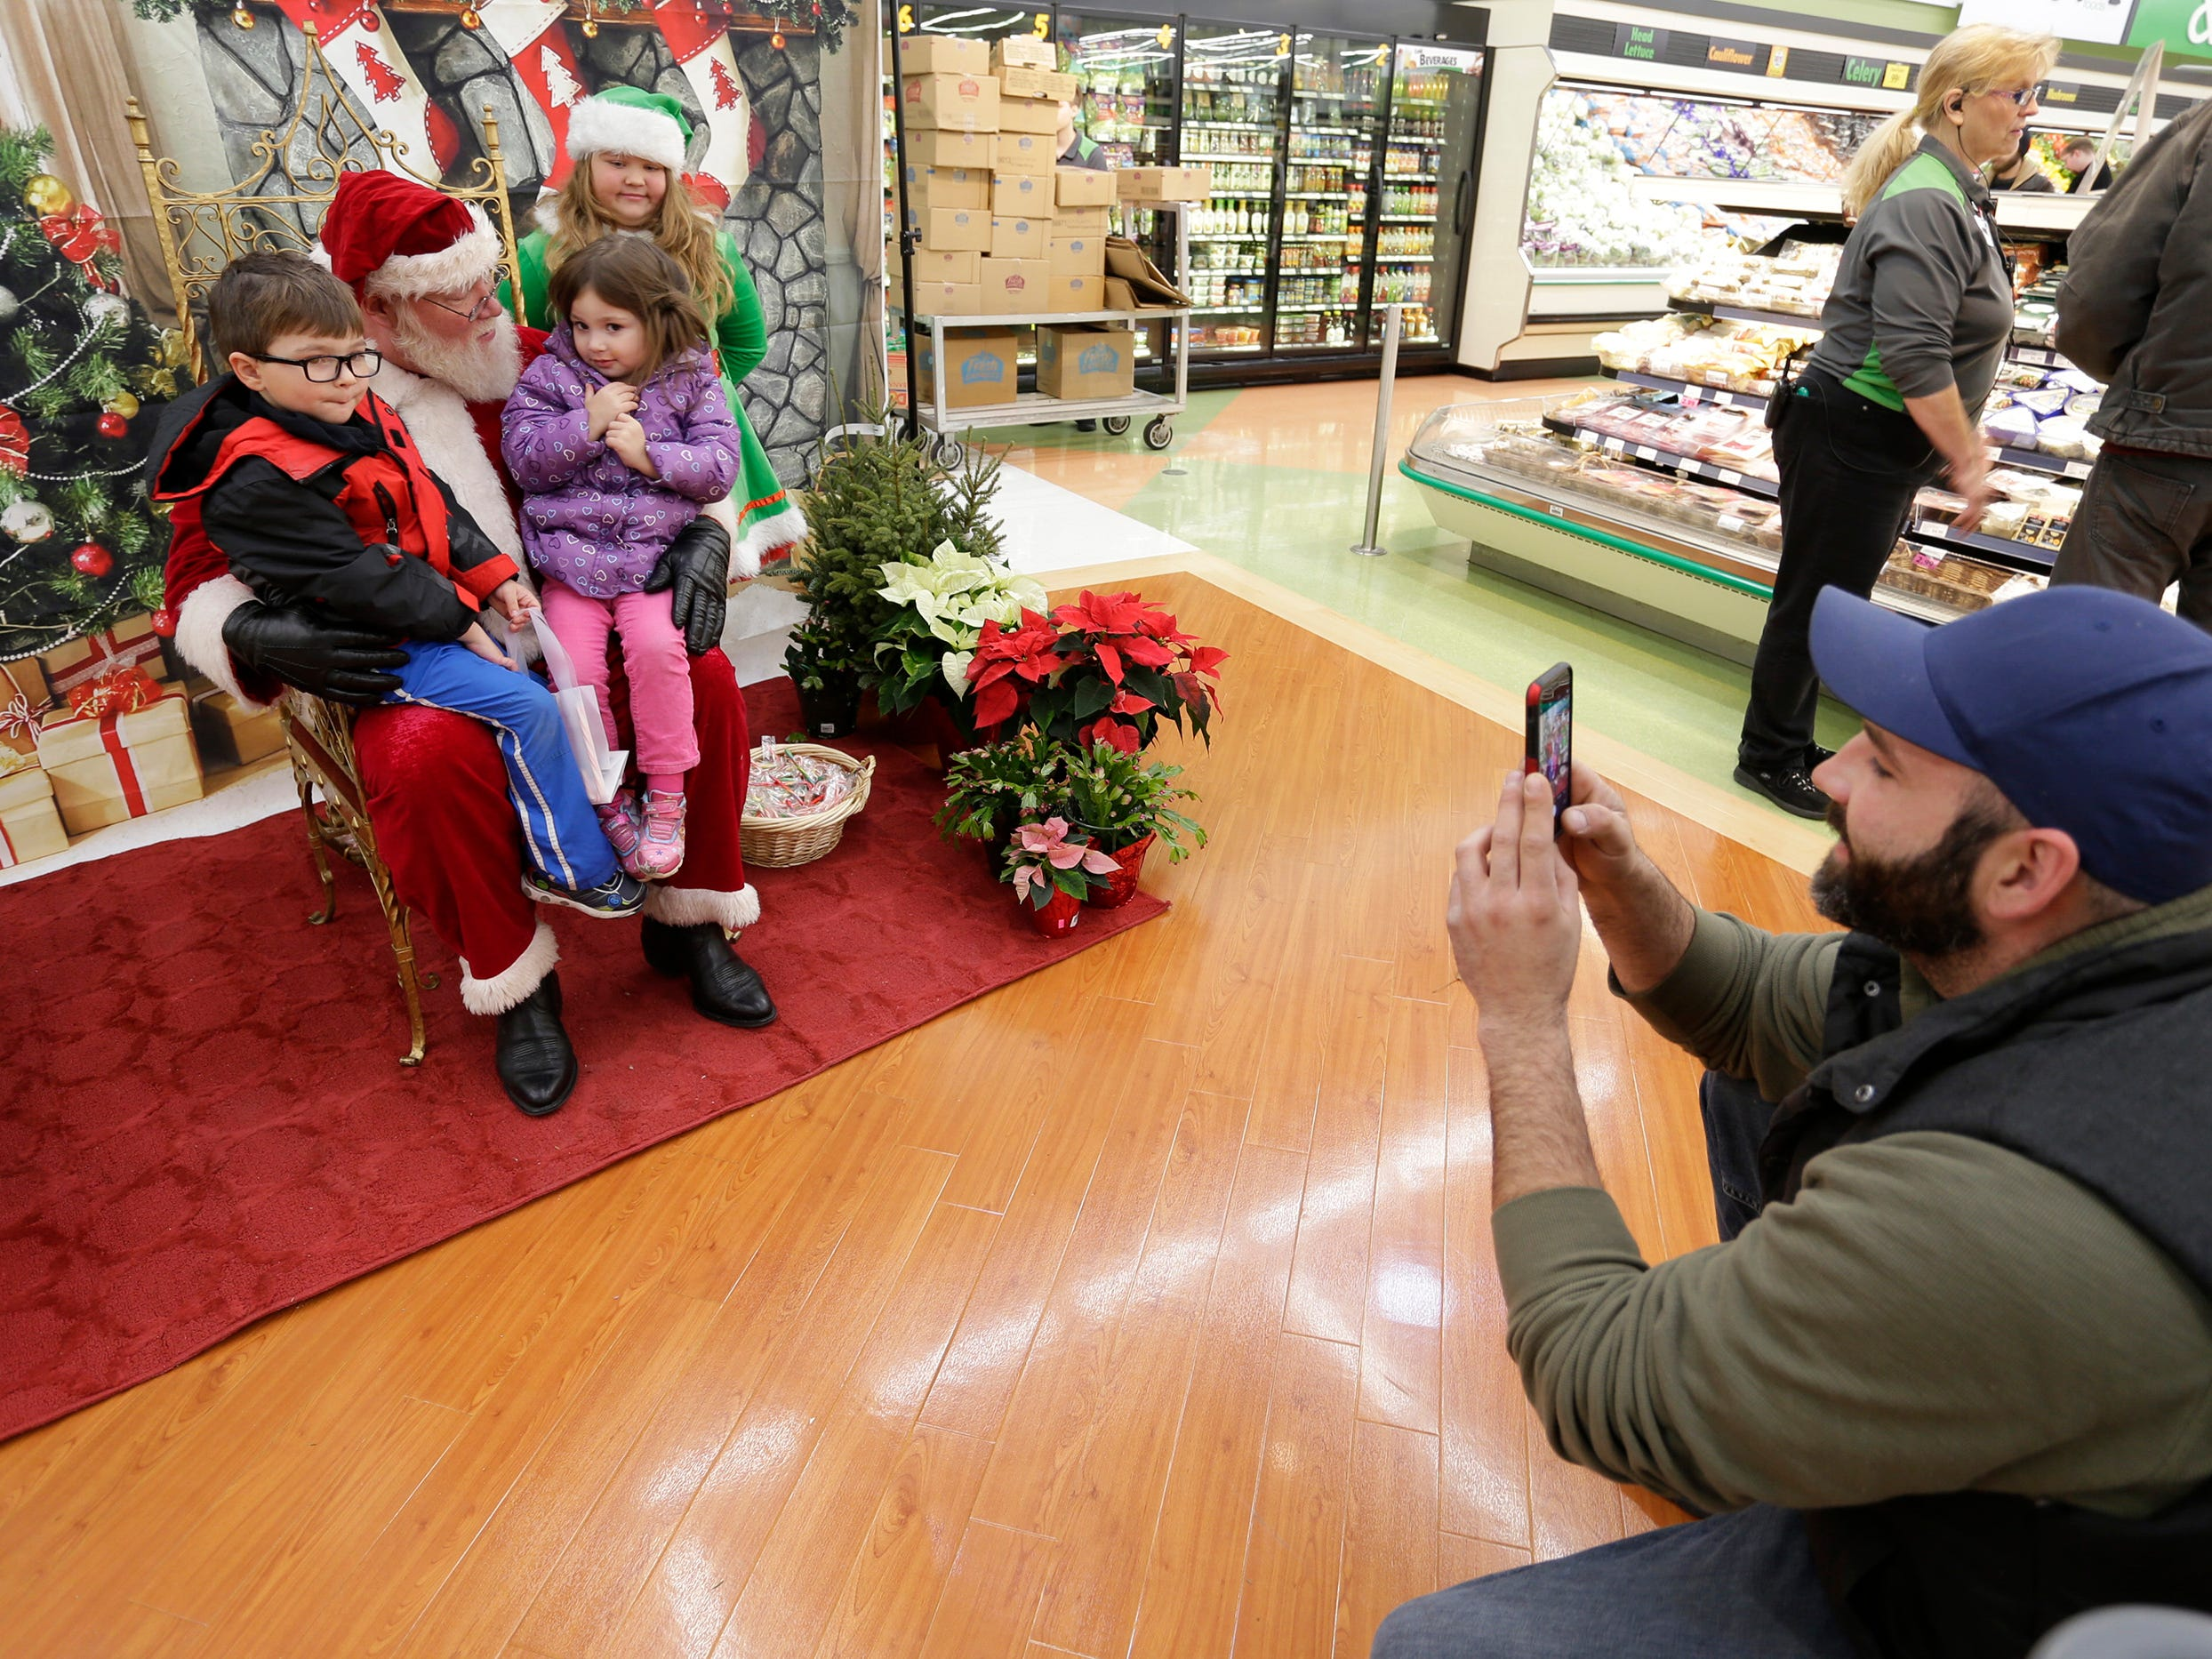 Brandon Zorn of Sheboygan, right, snaps a photo of his children Nolan, 4, and Everly 3, while taking in some shopping at Festival Foods, Saturday November 17, 2018, in Sheboygan, Wis. Santa Claus was at the event which was part of the Salvation Army's annual Kettle Campaign kickoff.